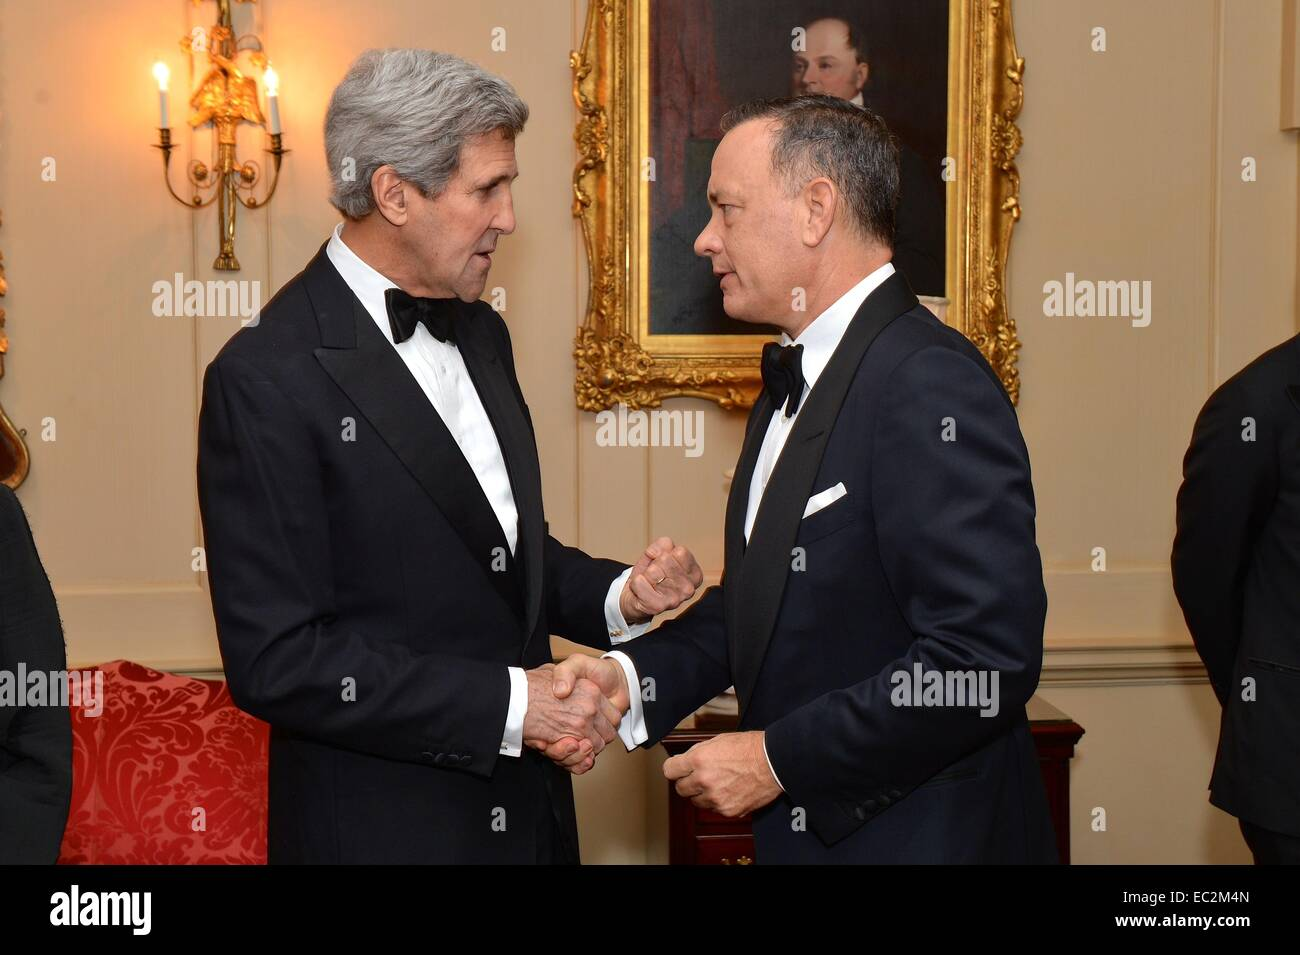 US Secretary of State John Kerry greets actor Tom Hanks before a dinner for the 2014 Kennedy Center Honorees at - Stock Image